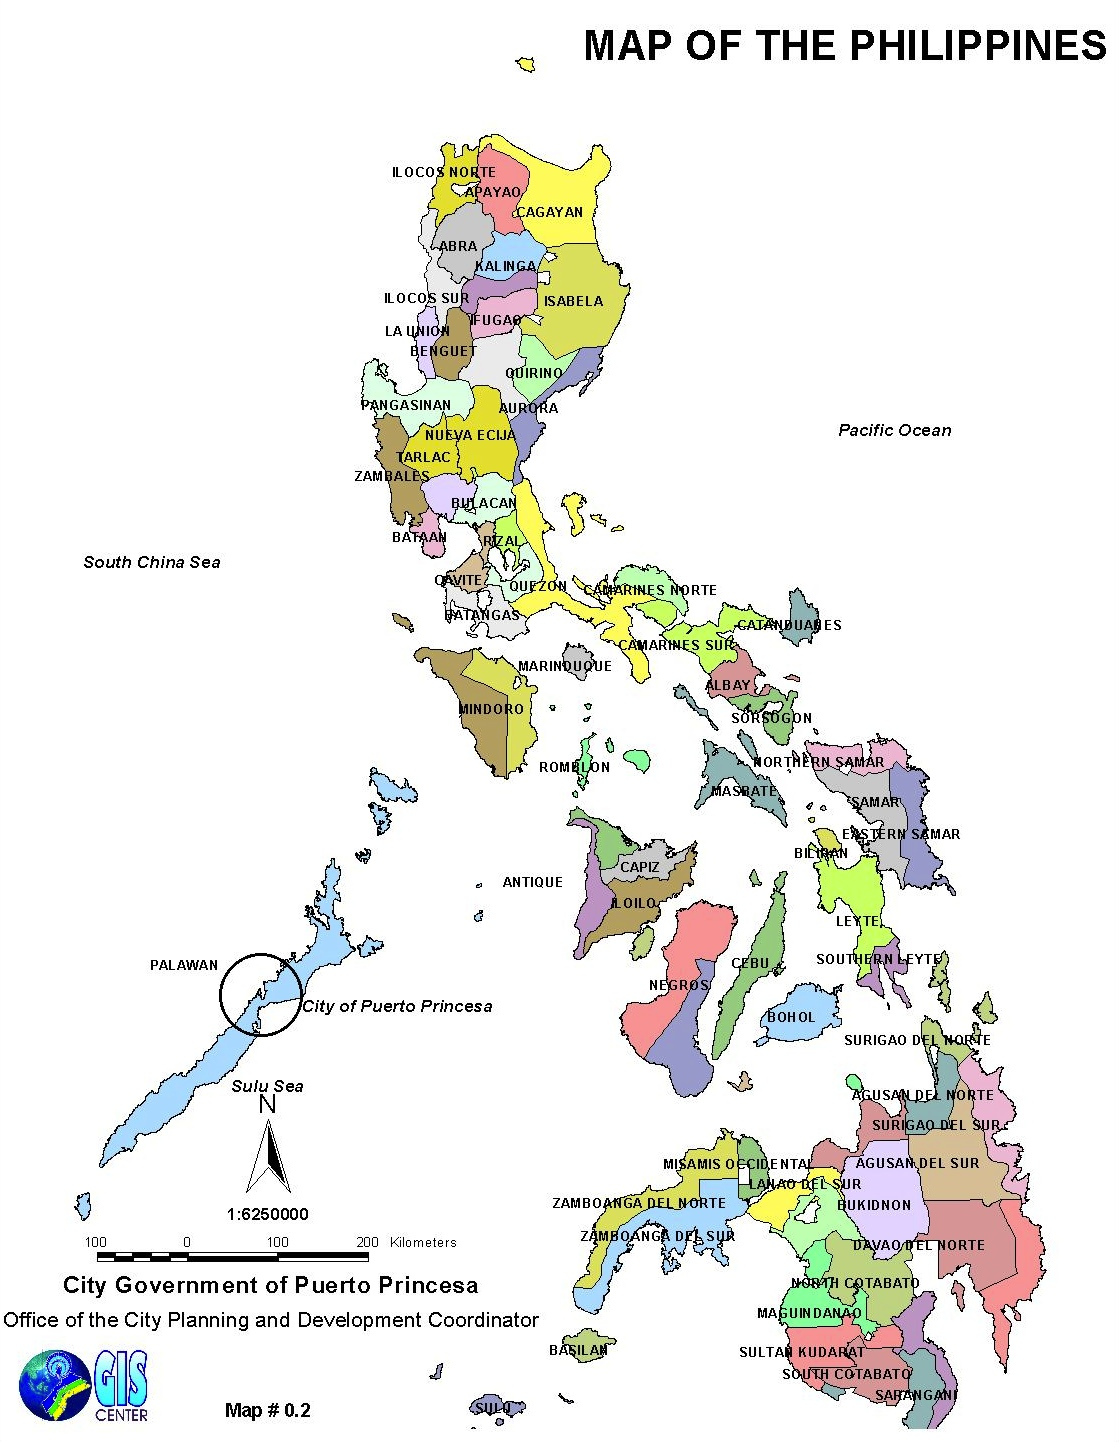 Provincial Map of the Philippines | Retired? No way!